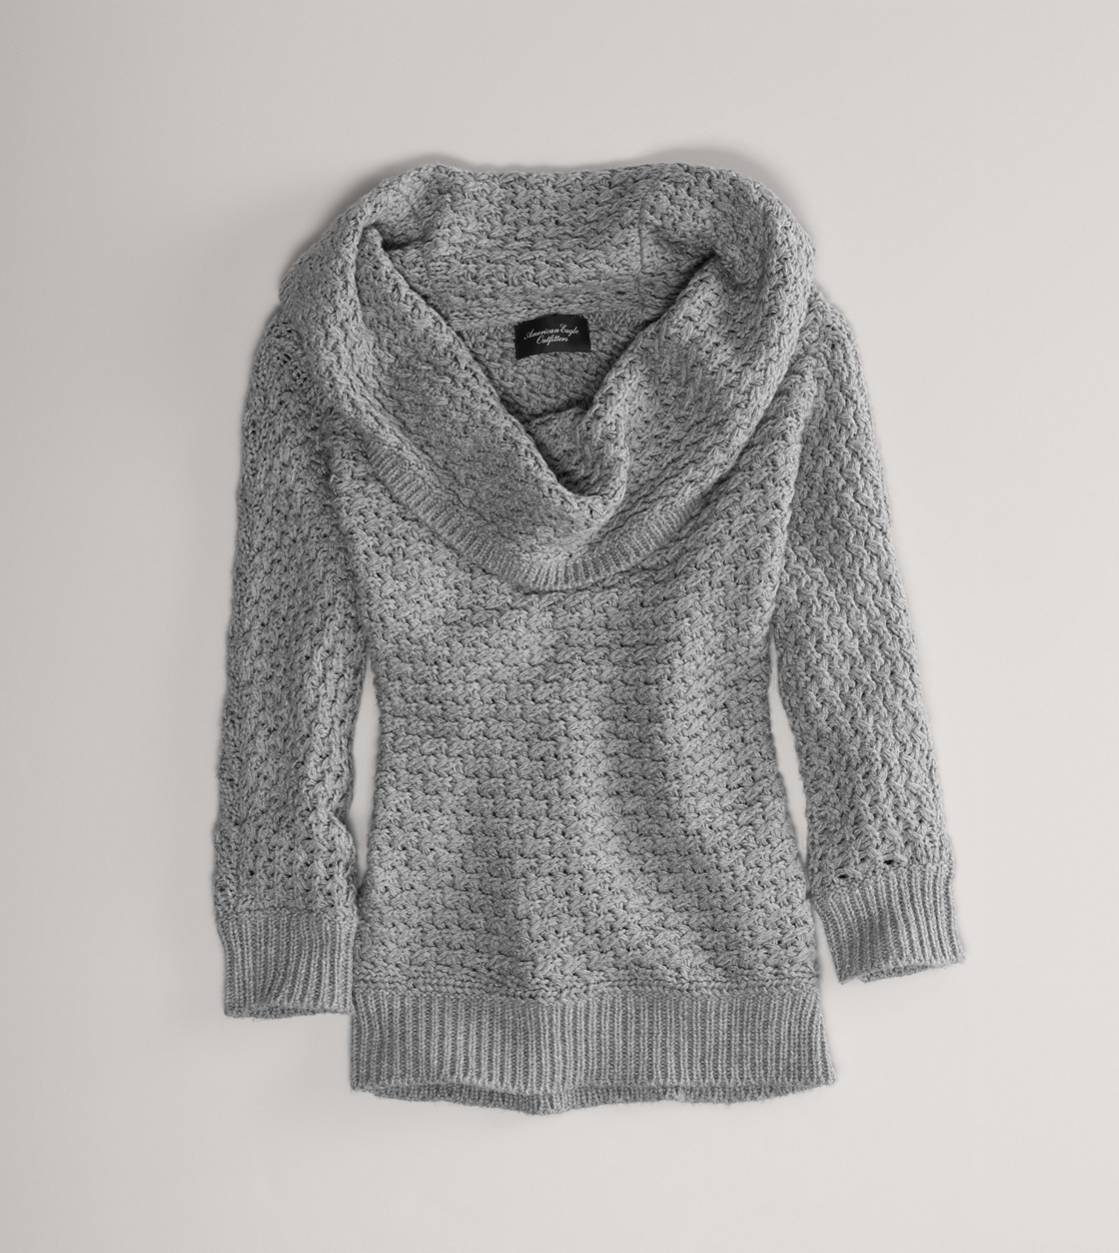 AE Knit Cowl Sweater American Eagle from American Eagle